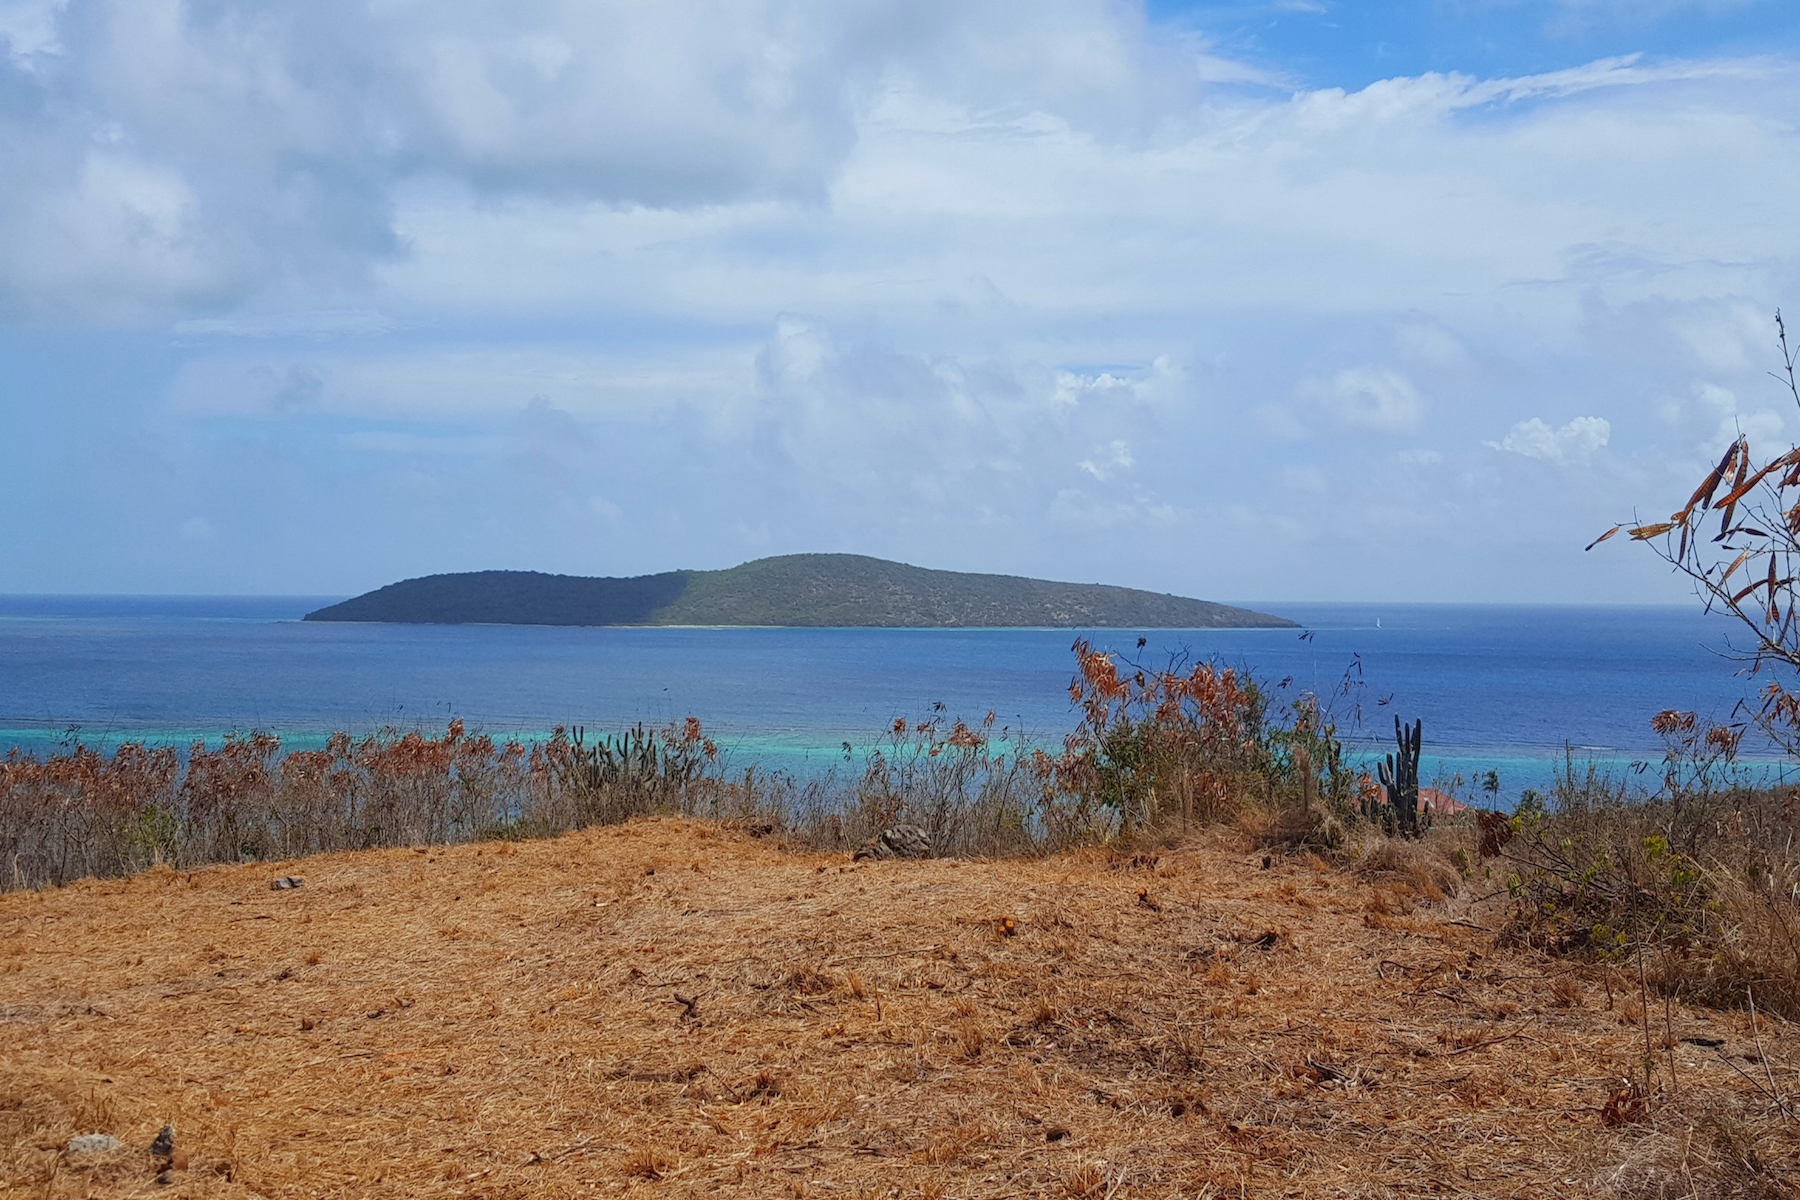 Land for Sale at 237 Cotton Valley 237 Cotton Valley St Croix, Virgin Islands 00820 United States Virgin Islands